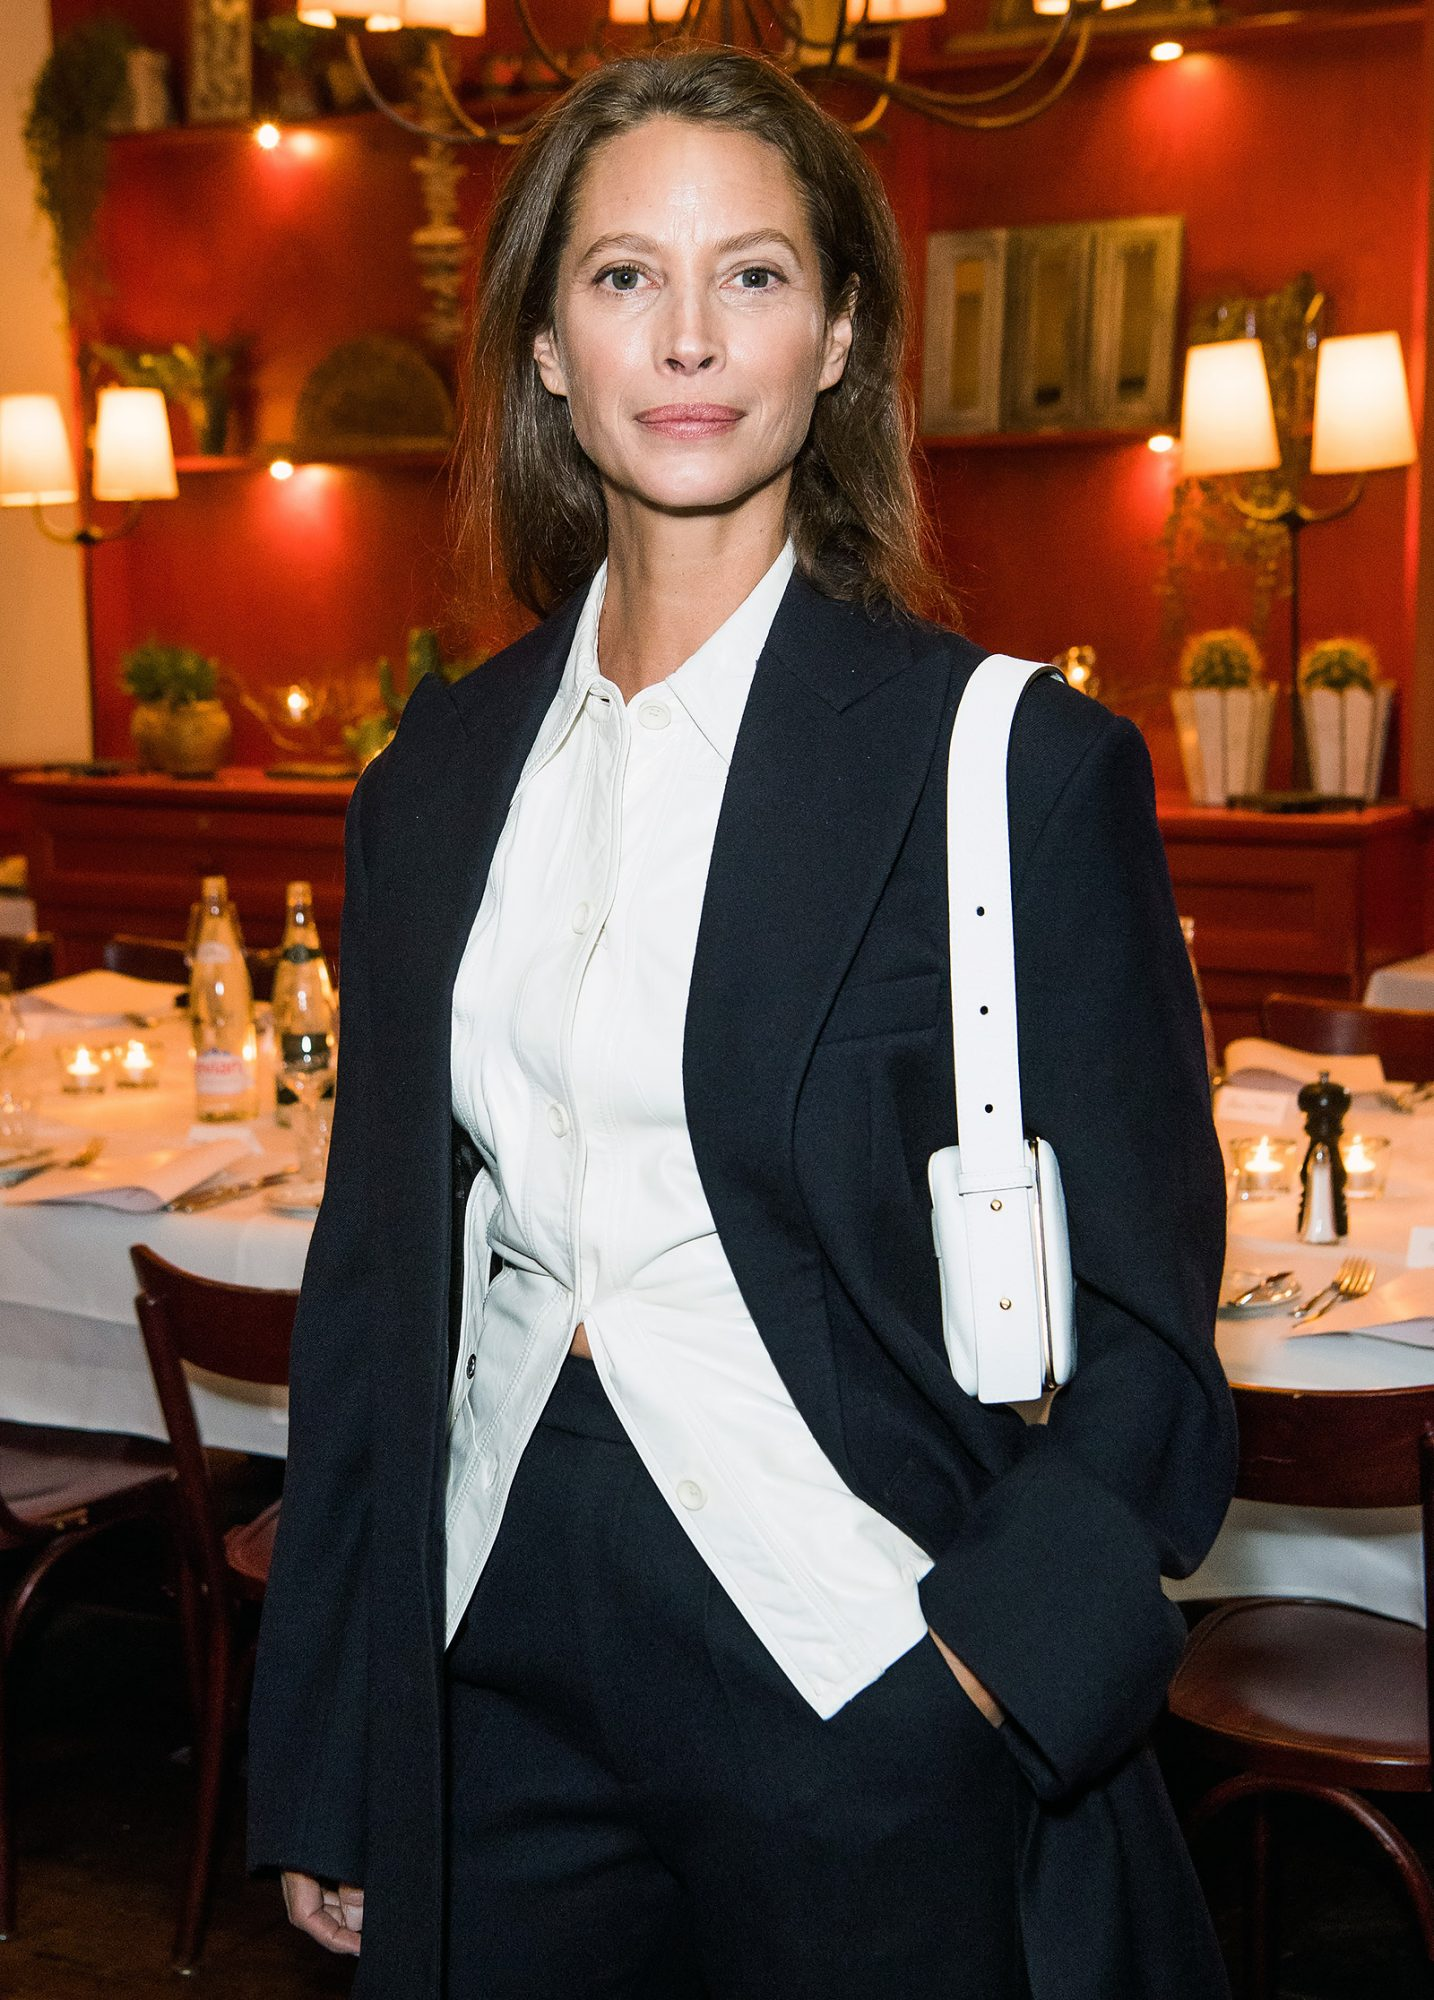 Vogue Dinner With Christy Turlington Burns In Berlin